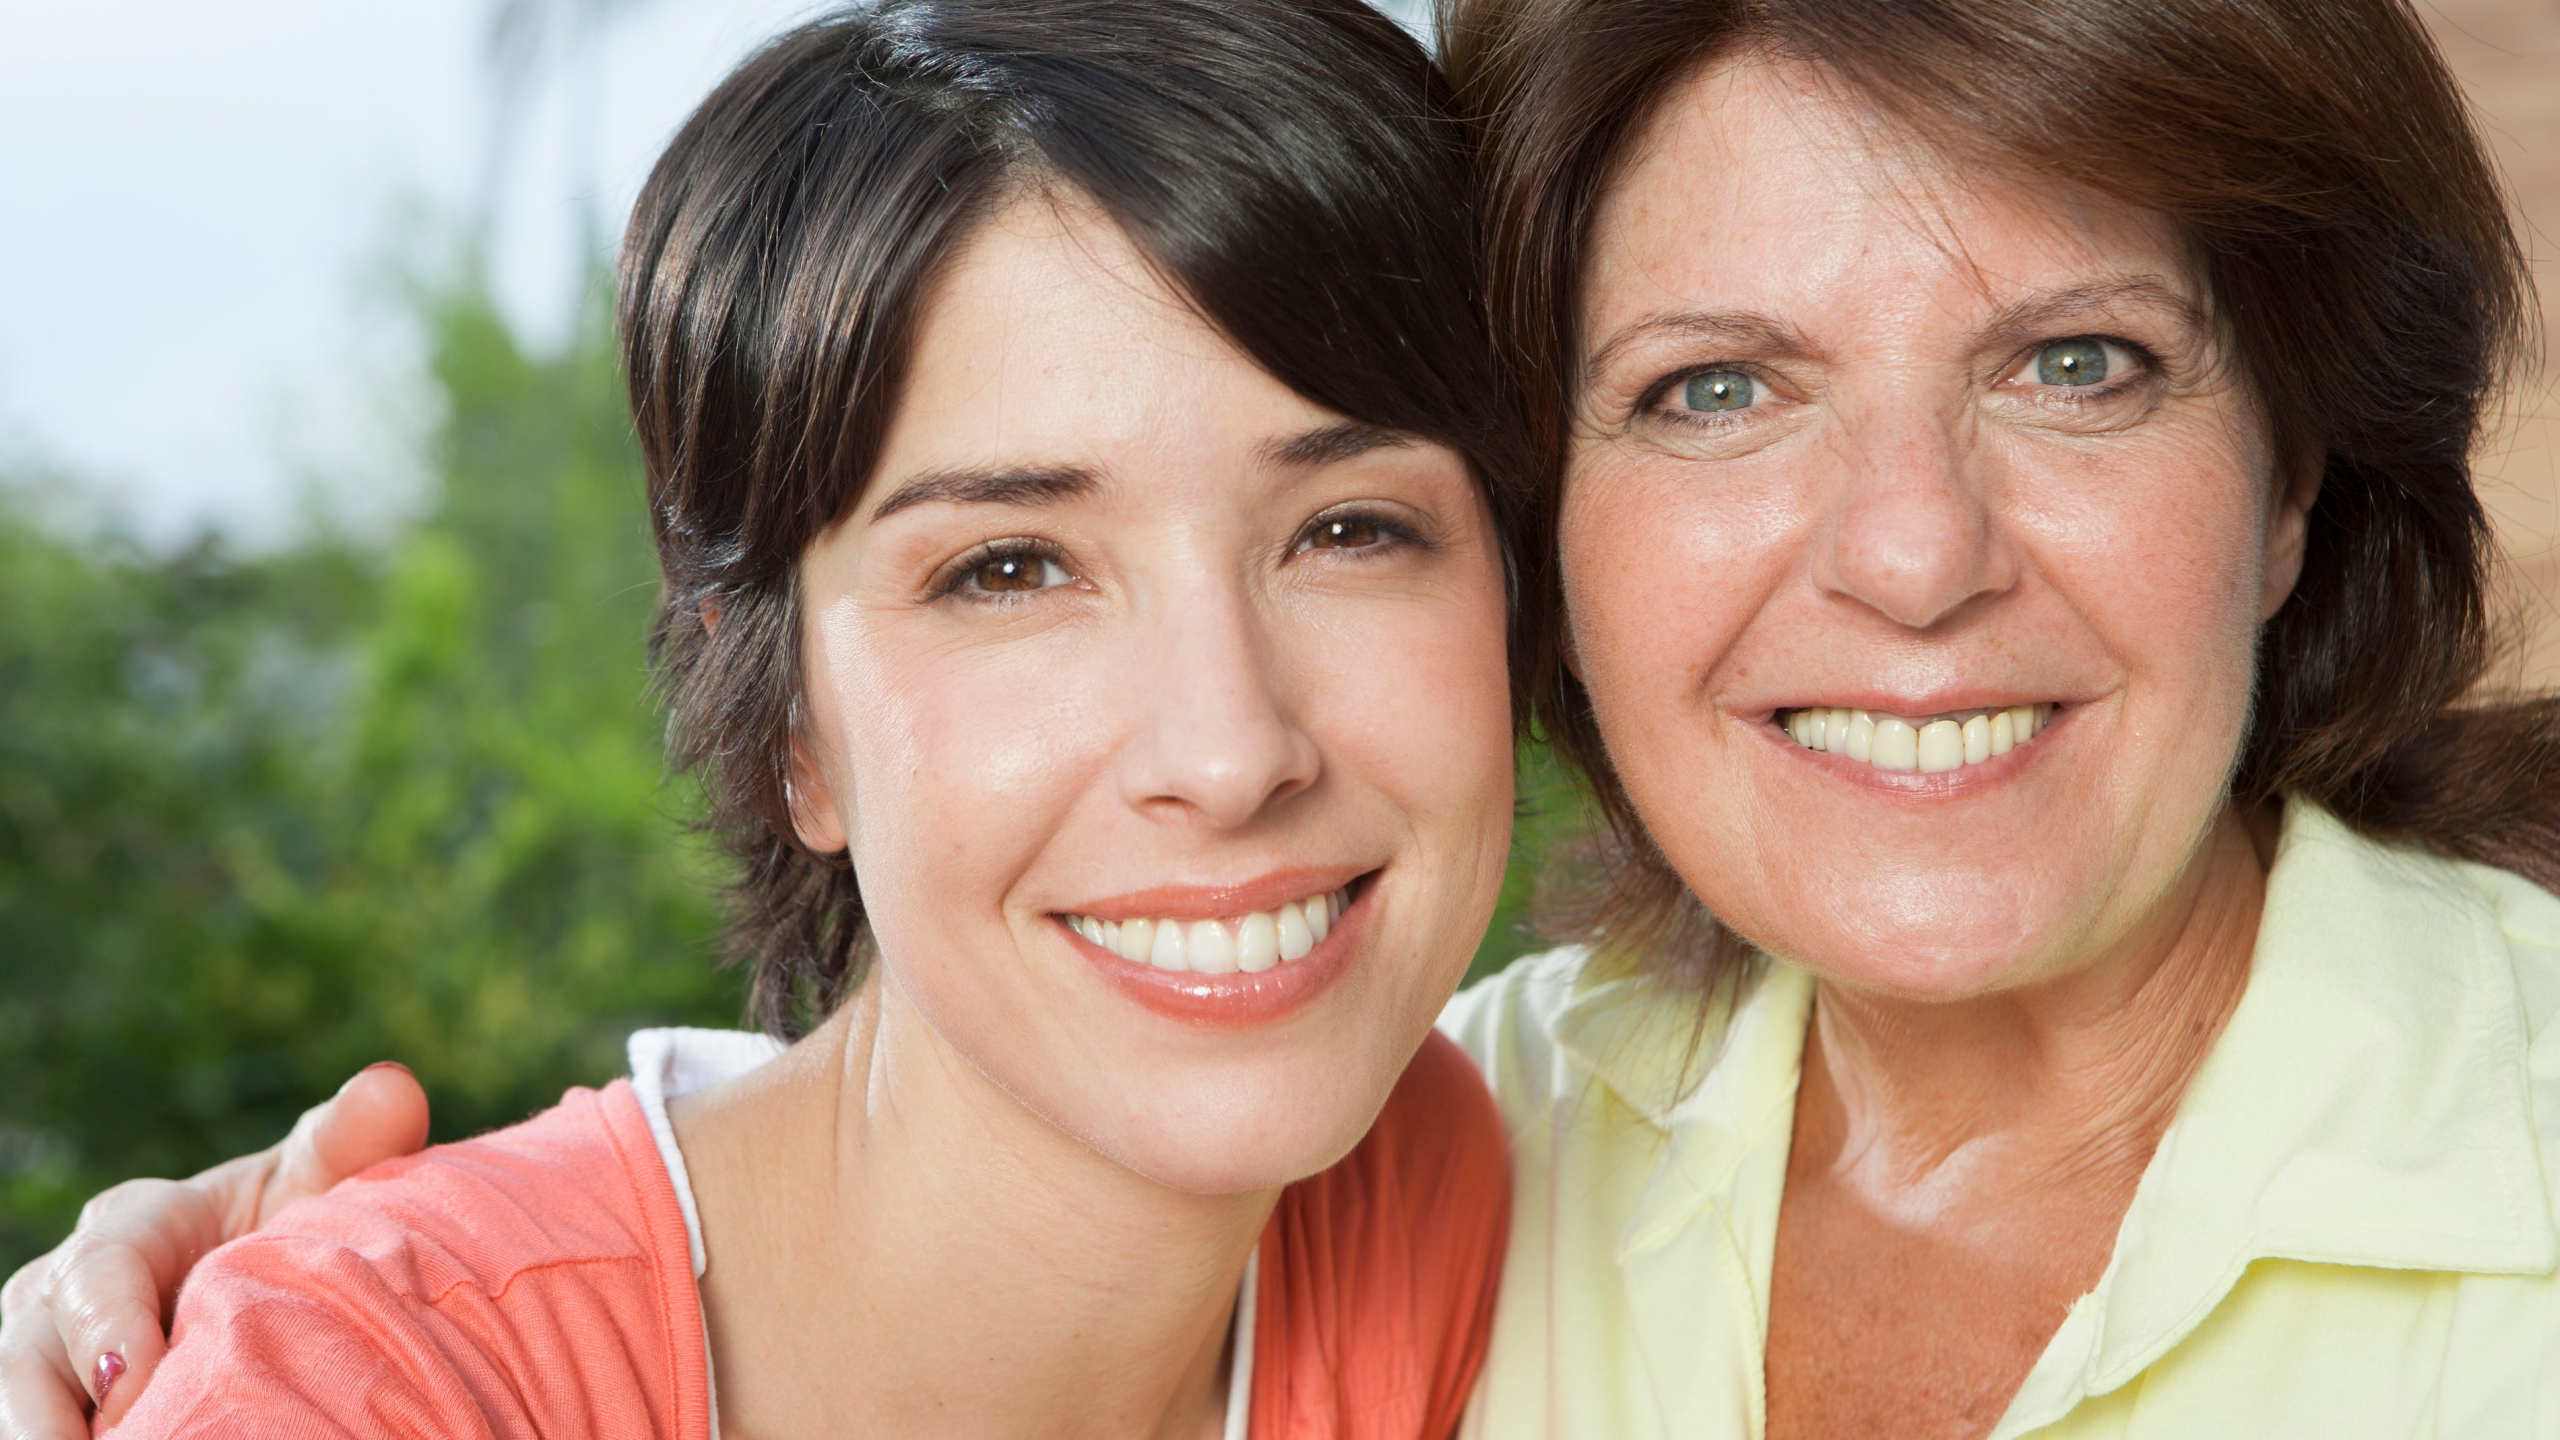 hispanic-mother-and-daughter_HtO8i4RHi_1532700338969.jpg